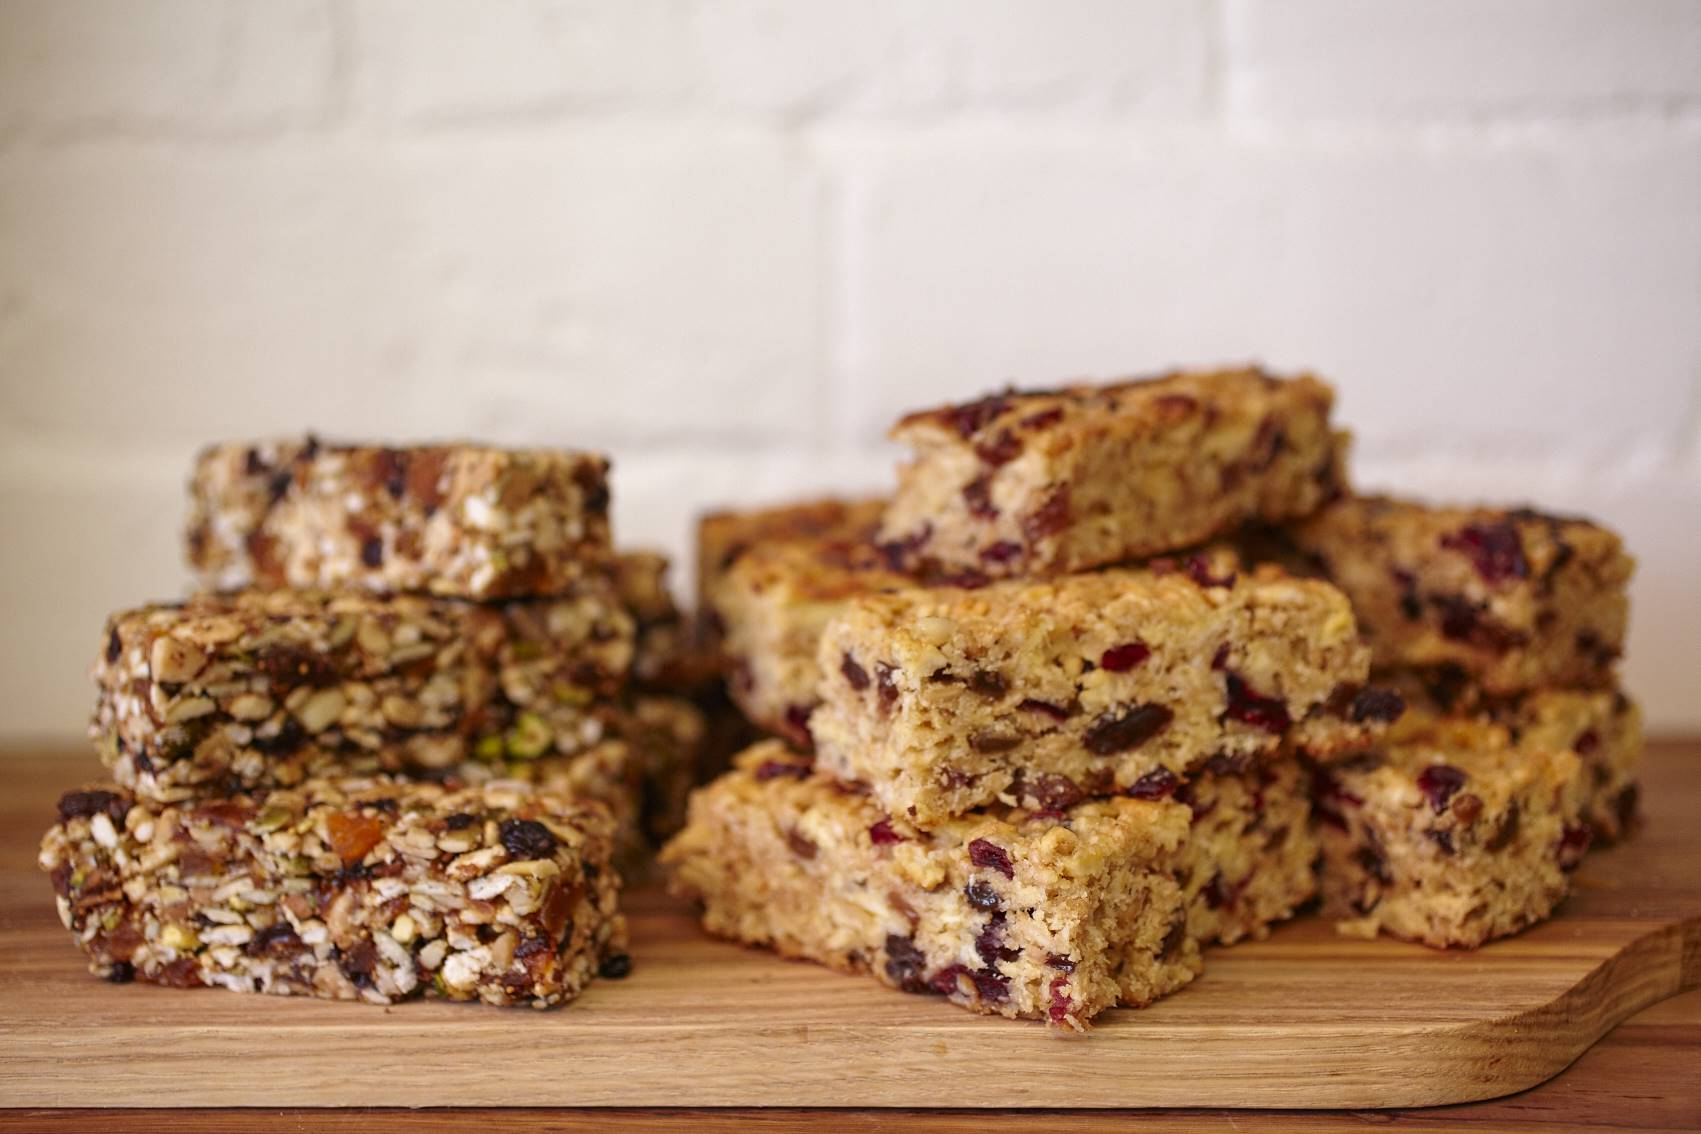 Healthy bars with options including gluten free, sugar free, vegan, dairy free and low sugar.